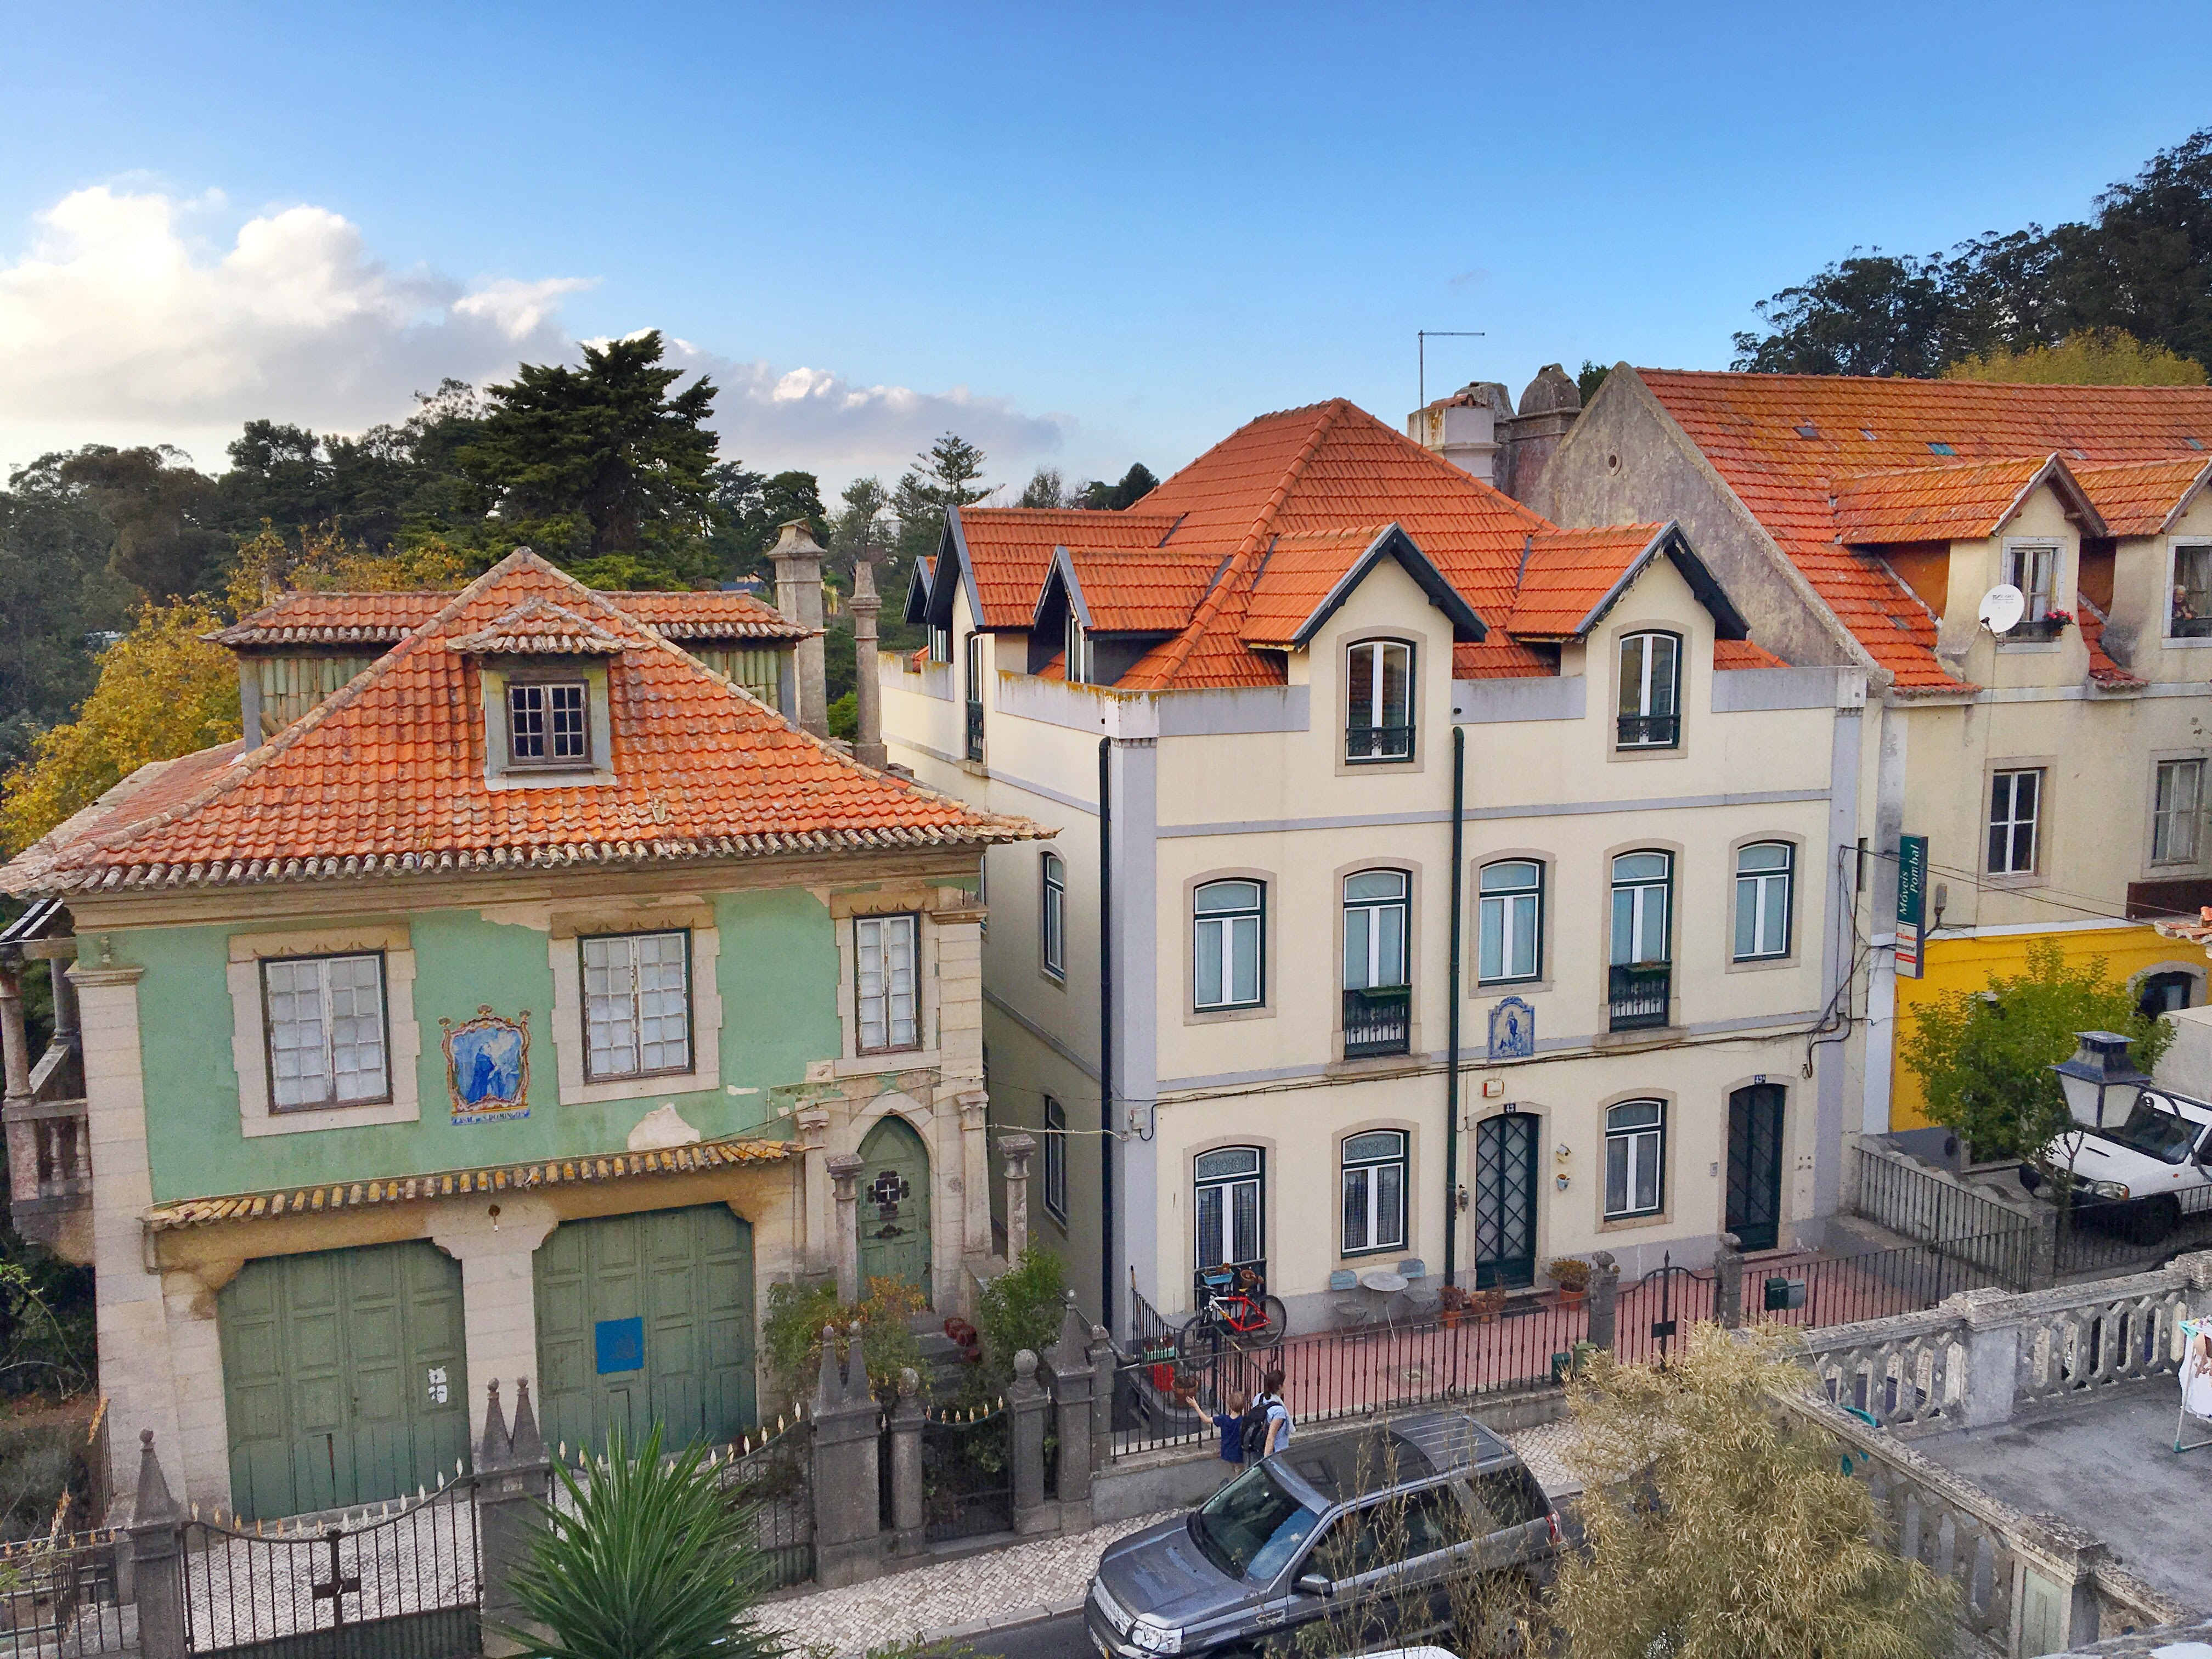 Colorful homes in Sintra, Portugal